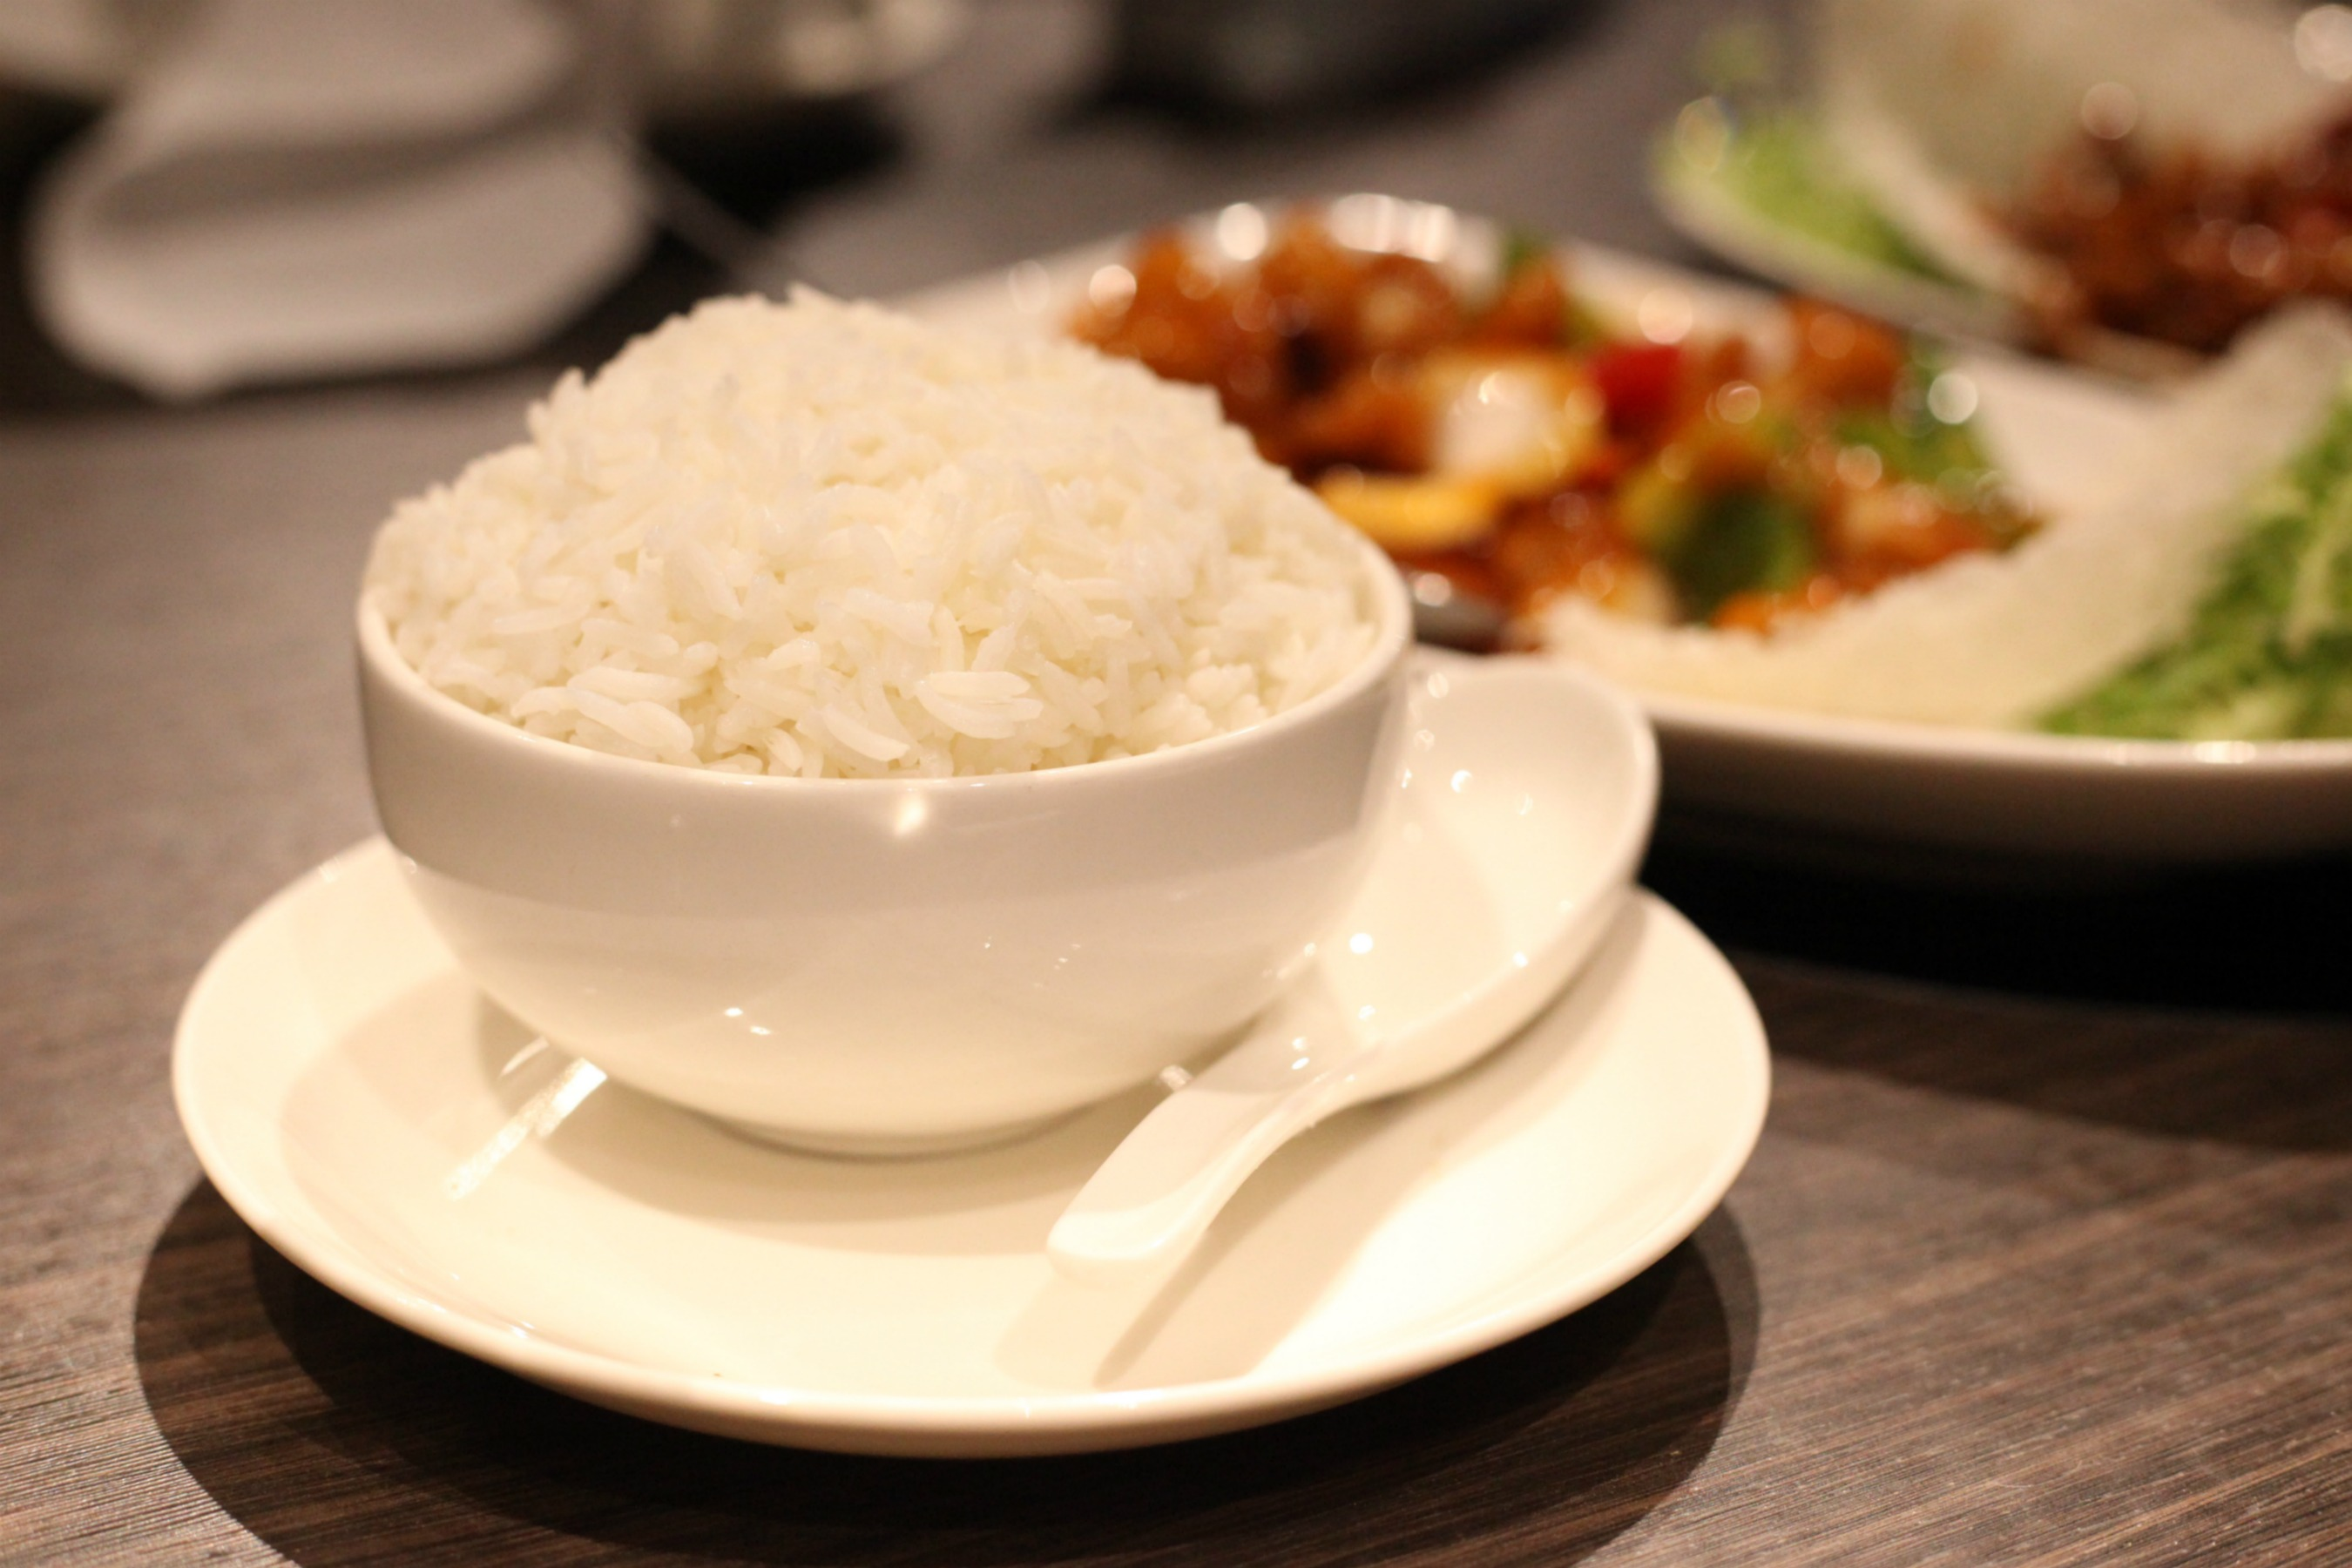 Steamed rice at Golden Dragon